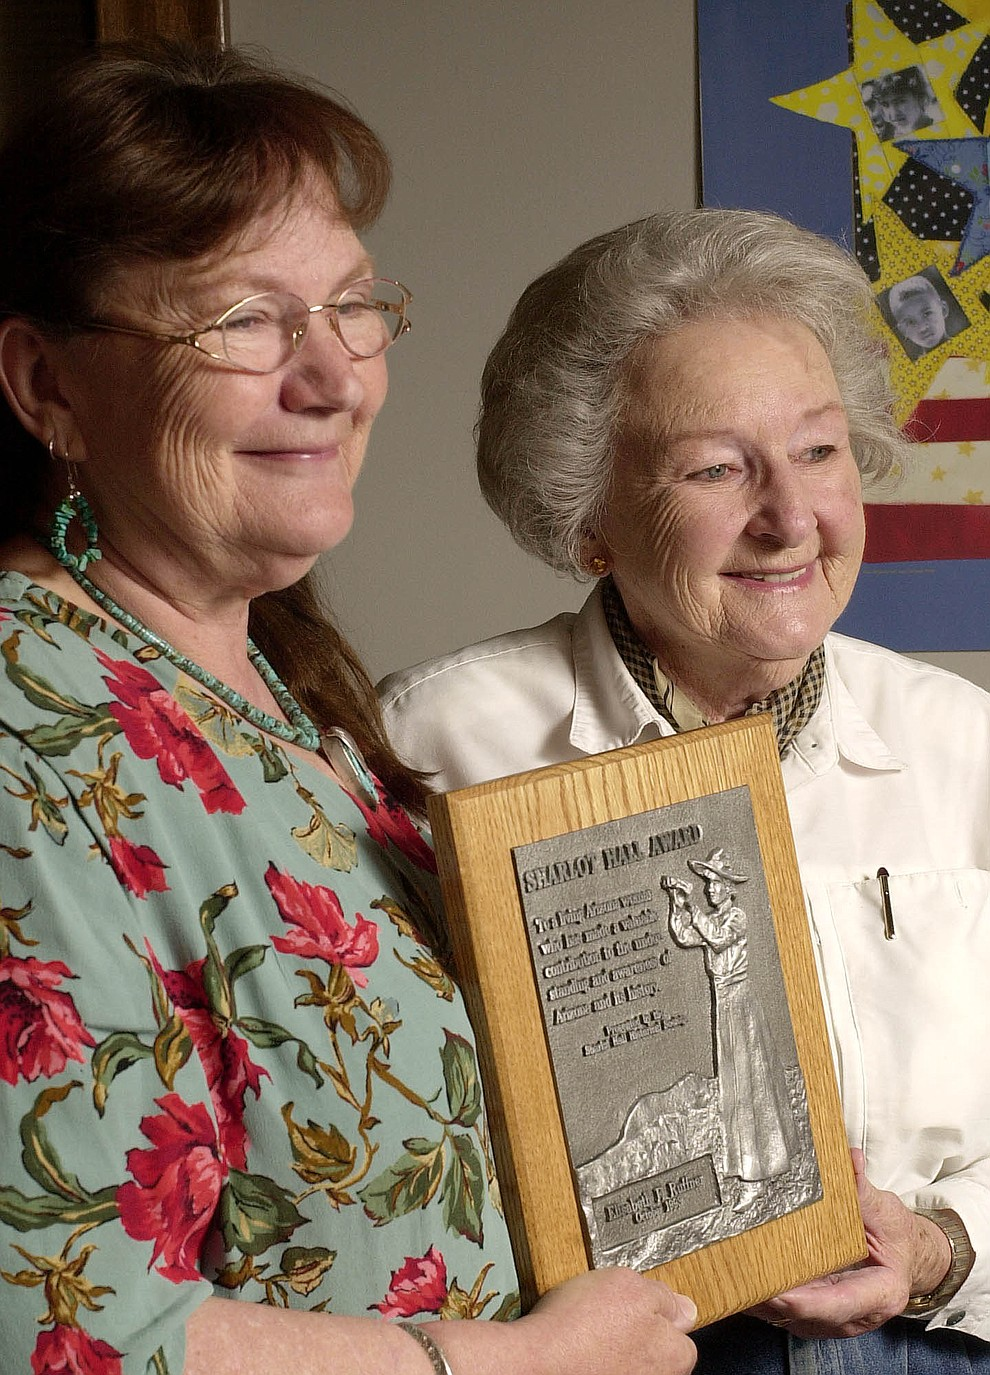 Melissa Ruffner, left, and mother Elisabeth display the Sharlot Hall Award April 18, 2003, won by Elisabeth in 1993. Melissa is the current winner of the award , presented to both mother and daughter. (Courier file photo)